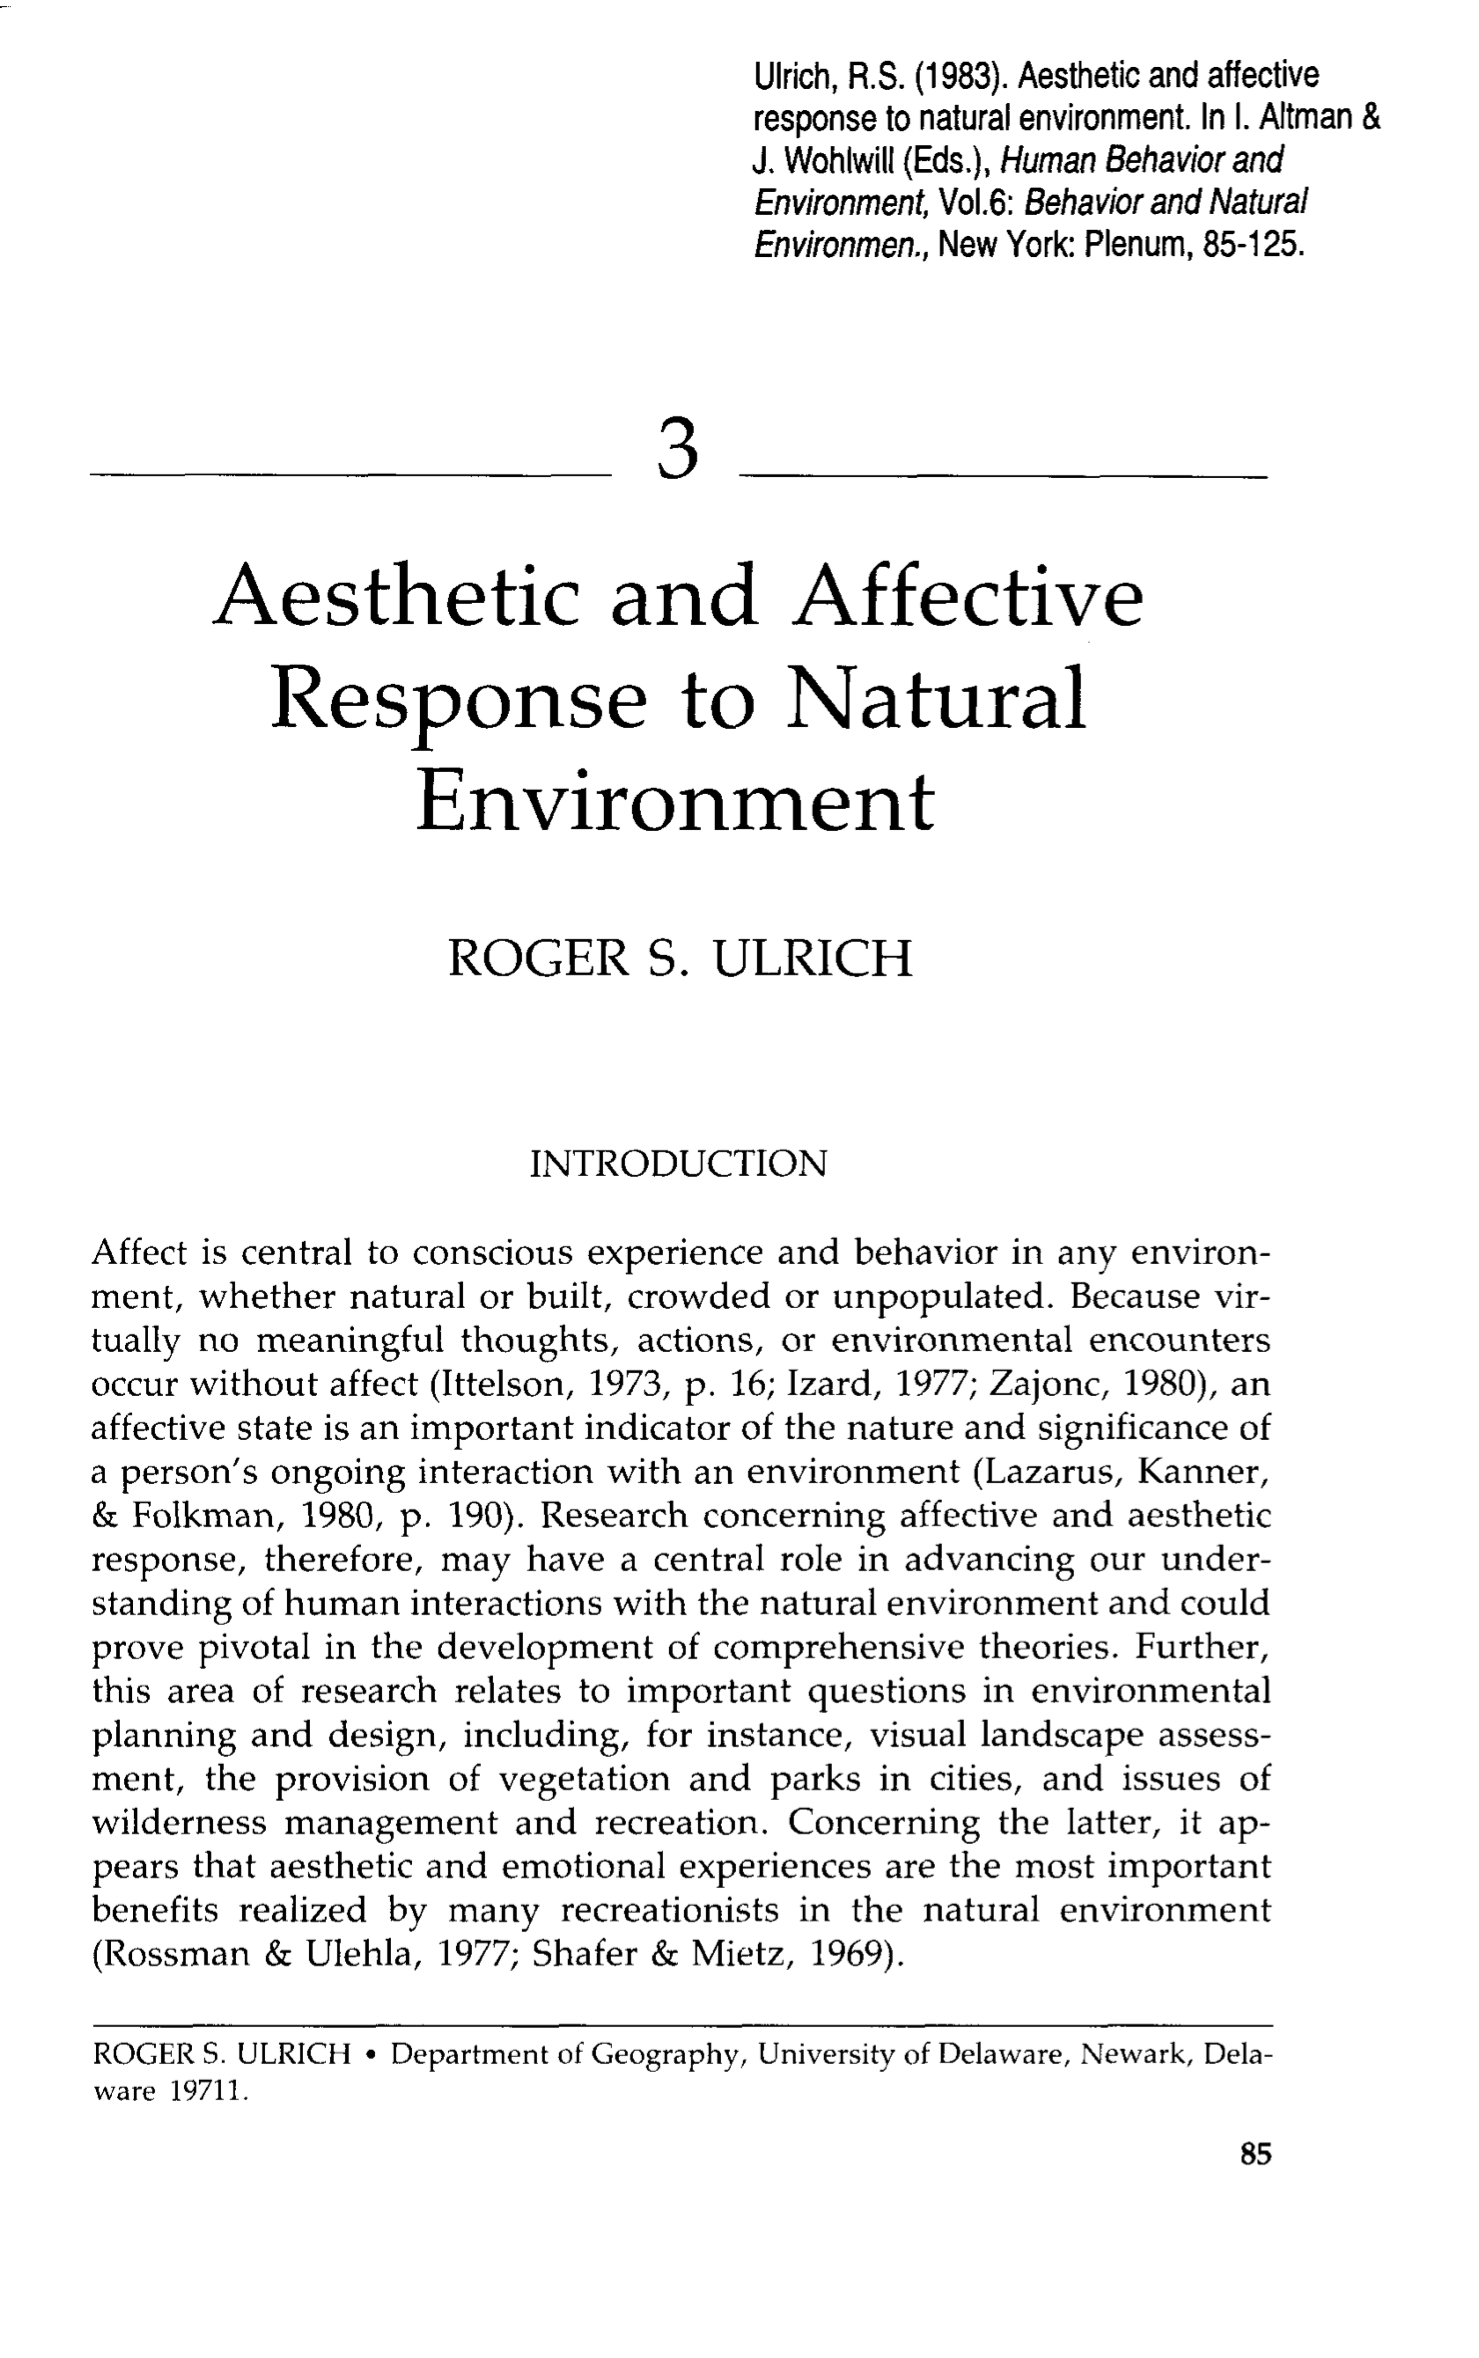 Ulrich 1983 - Aesthetic and Affective Response to Natural Environment.png